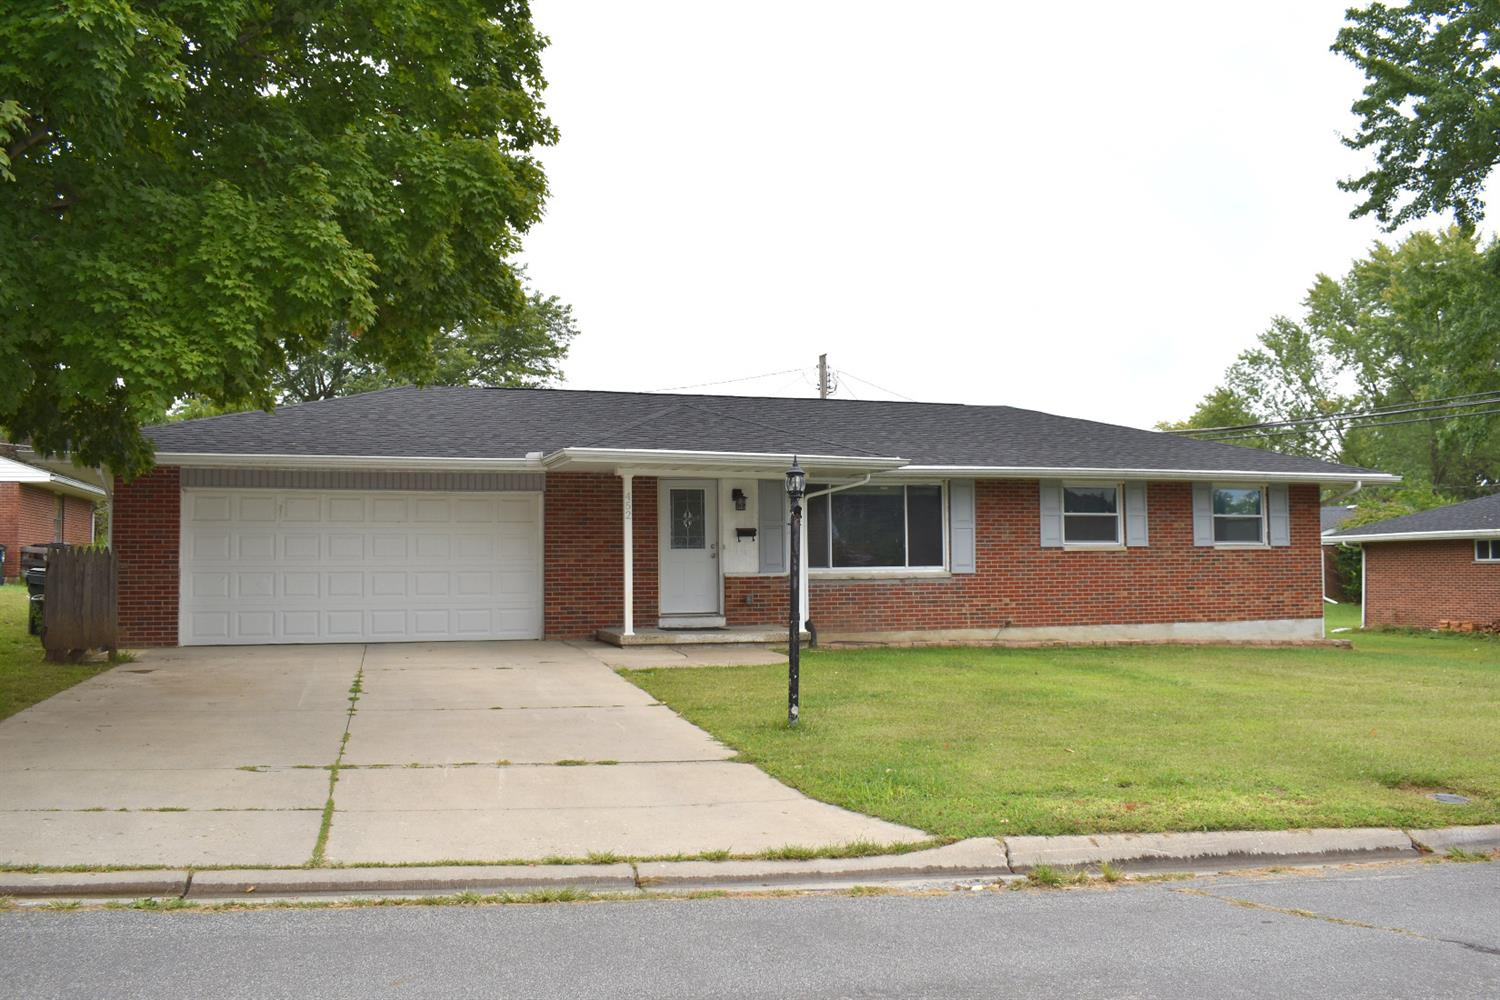 Extensively Remodeled in 2015, this older brick ranch home features a rare open floor plan with a large main living area with no walls between the living room, kitchen and family room. The updated kitchen includes granite counters, backsplash, an island, updated cabinets. Master has a full bath attached. A large 20X15 patio completes the home.